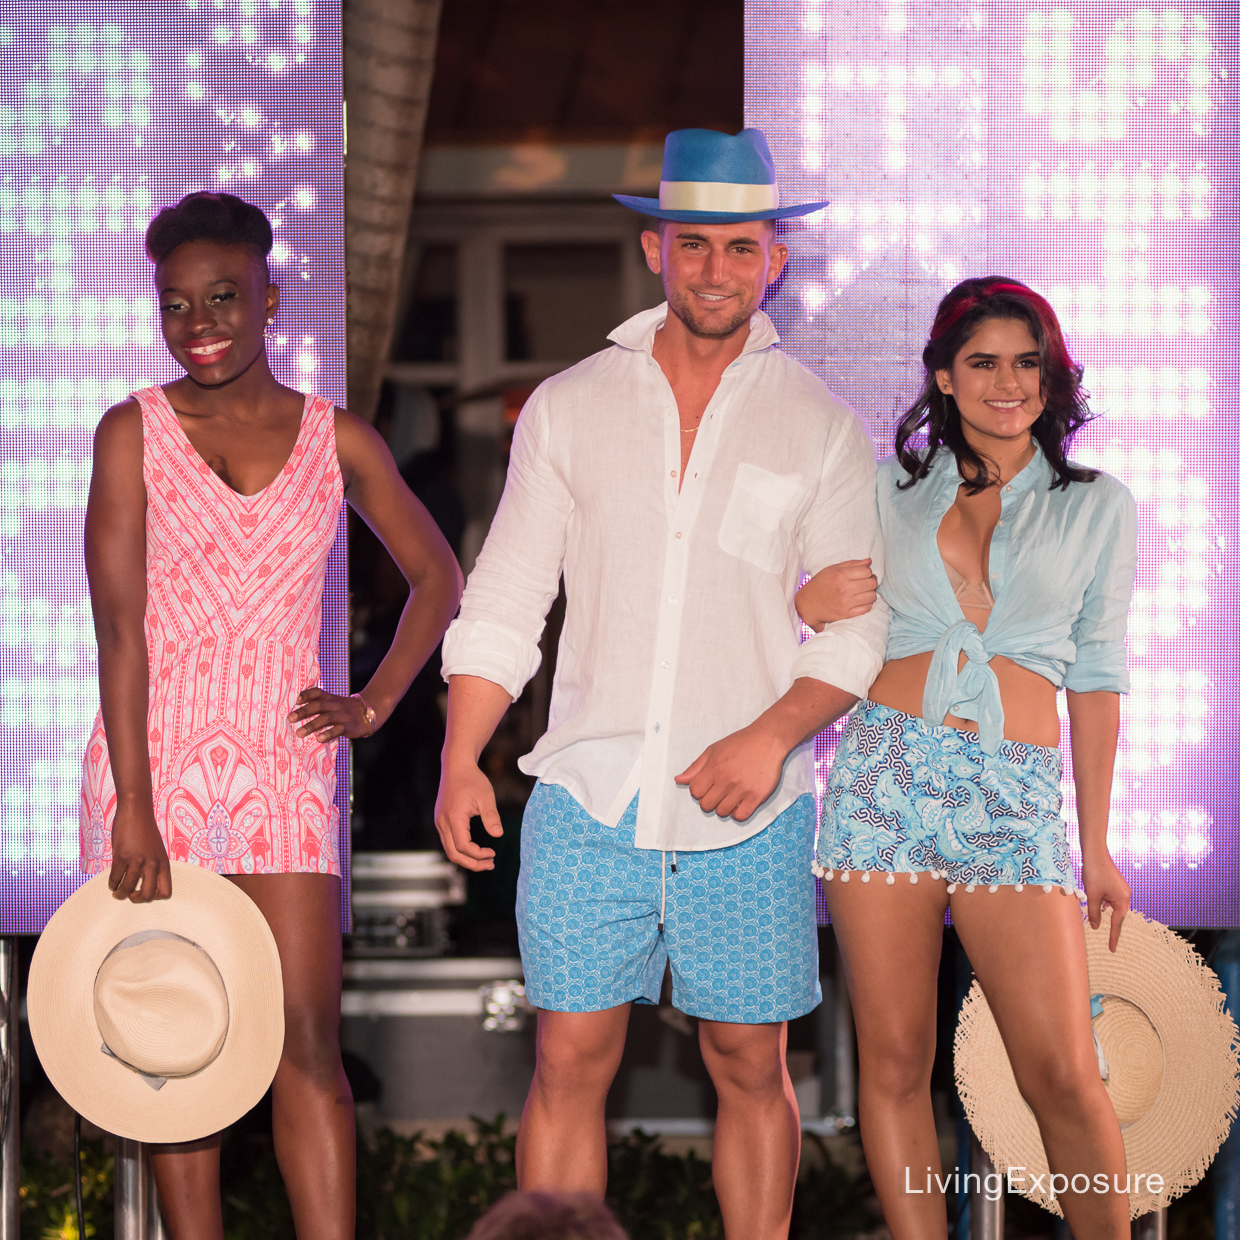 delray-beach-fashion-week-2016-swim-surf-show-photography-living-exposure-dda-event-78.jpg